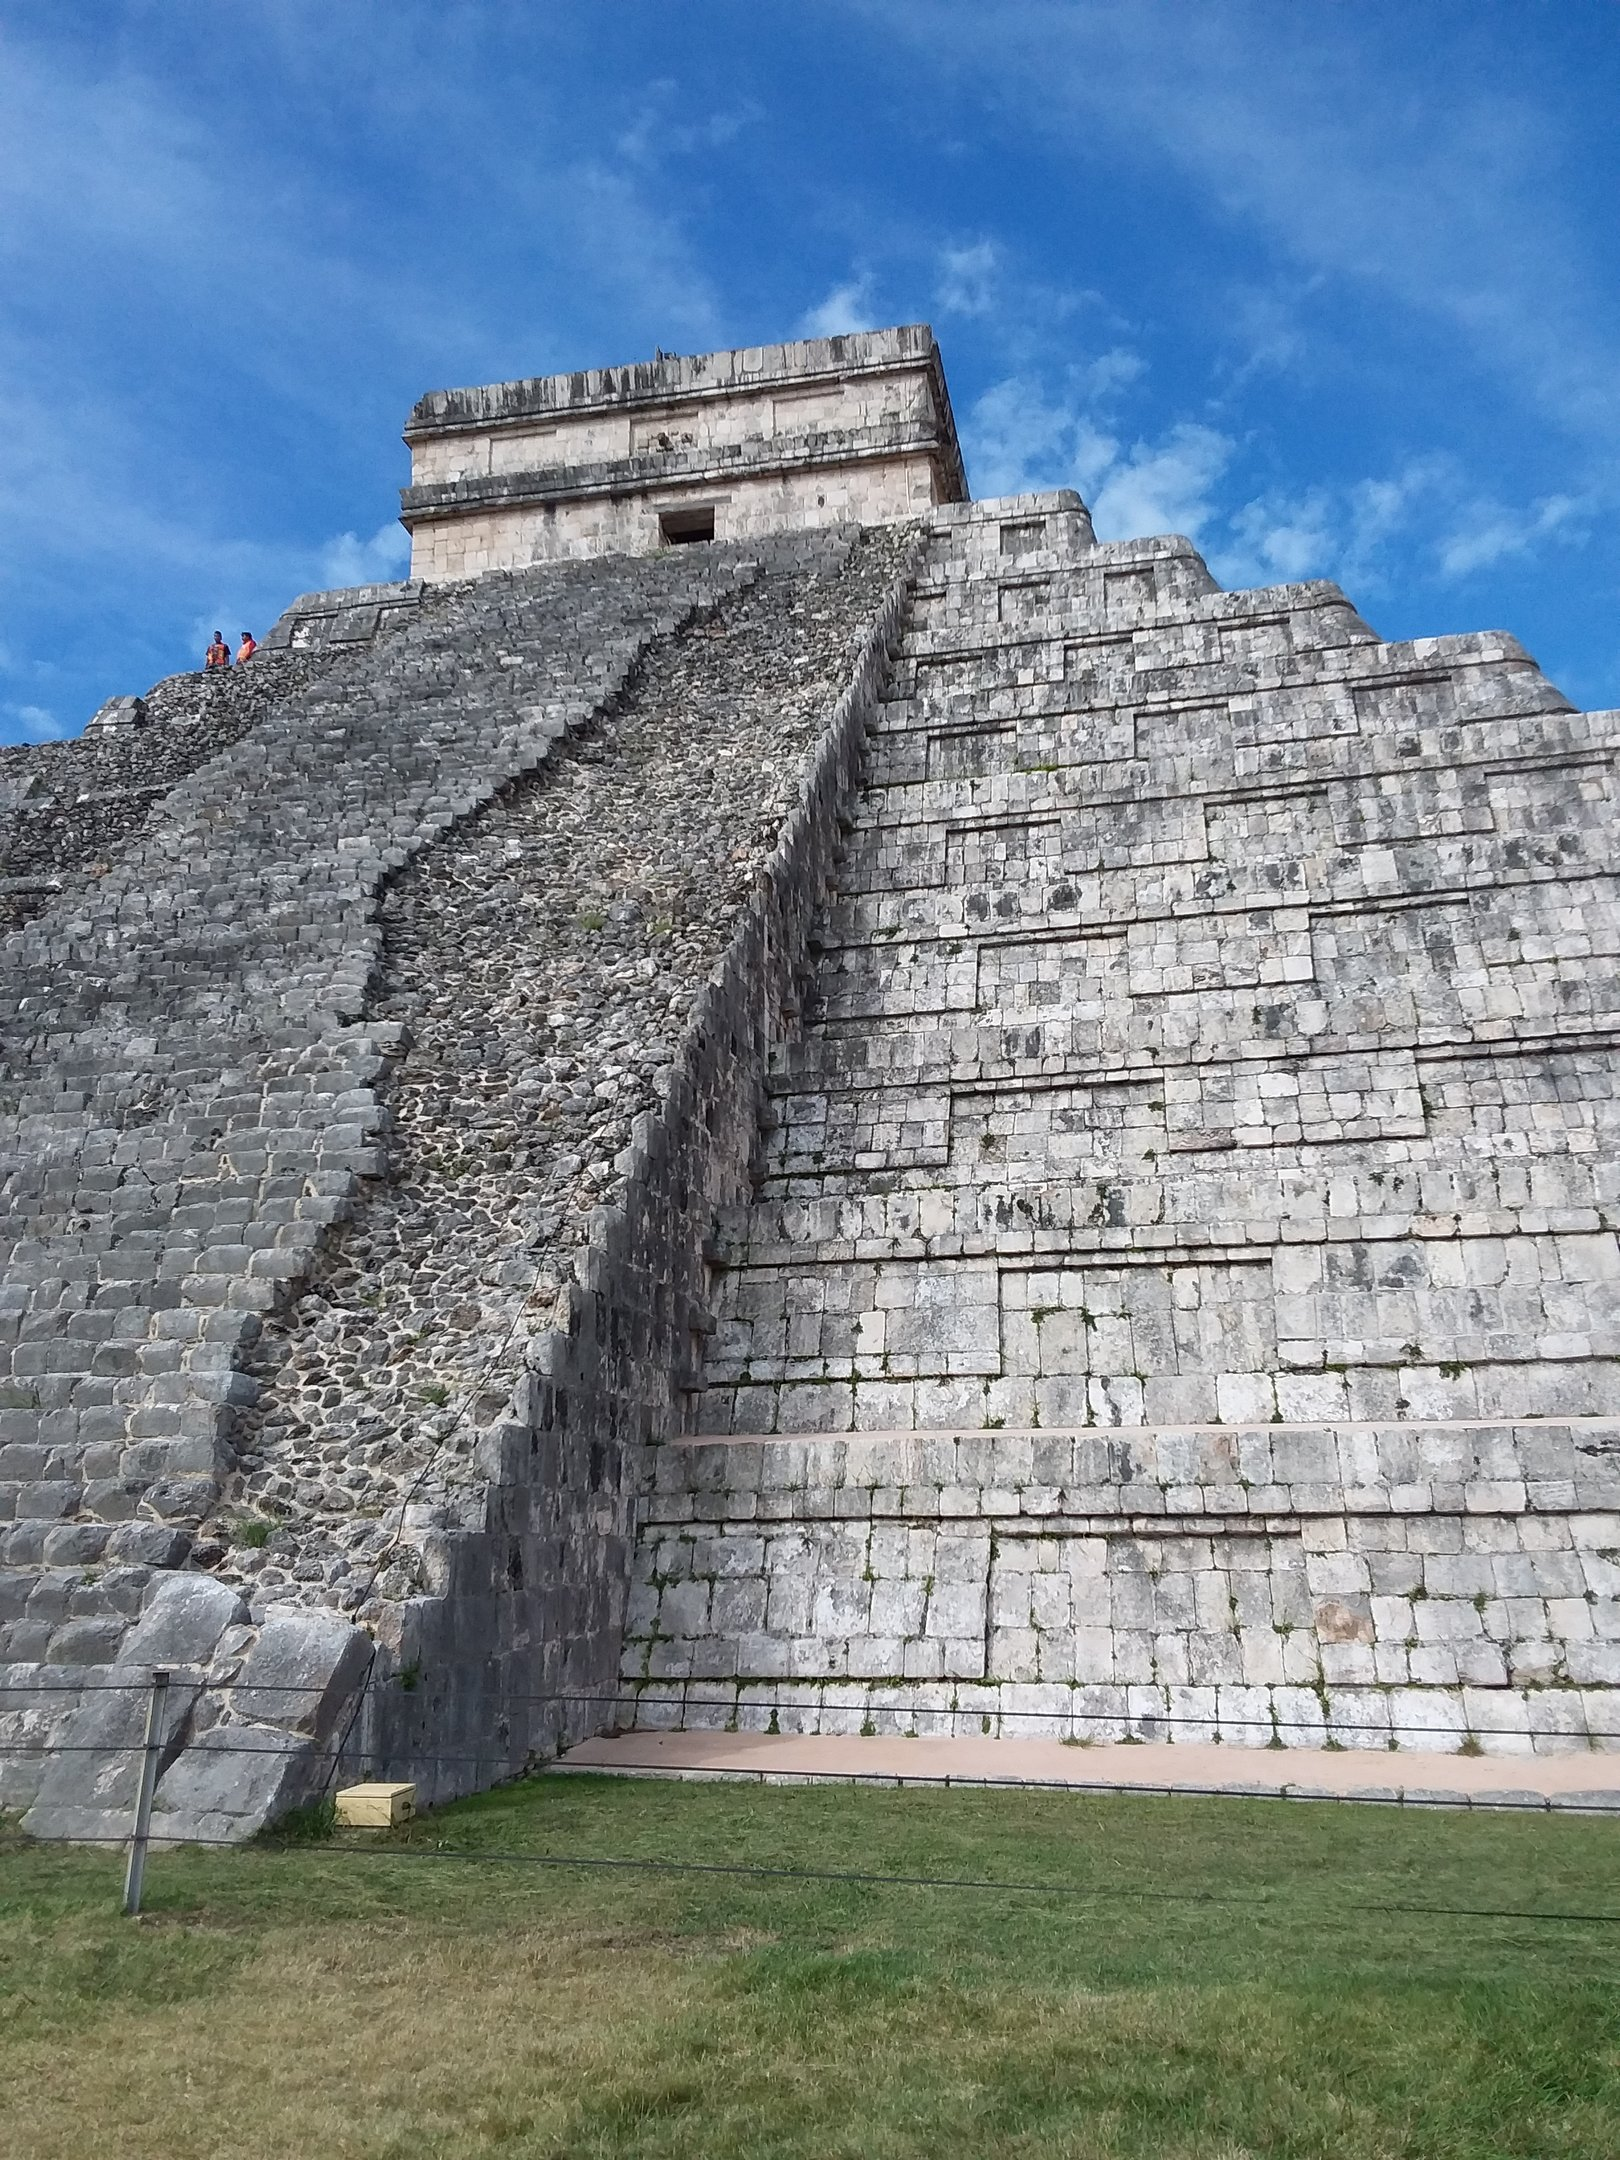 20181224_081441-jpg.48201_Chichen Itza (Not So Much a Story Than It Is Pictures)_Travel Stories_Squat the Planet_4:02 PM